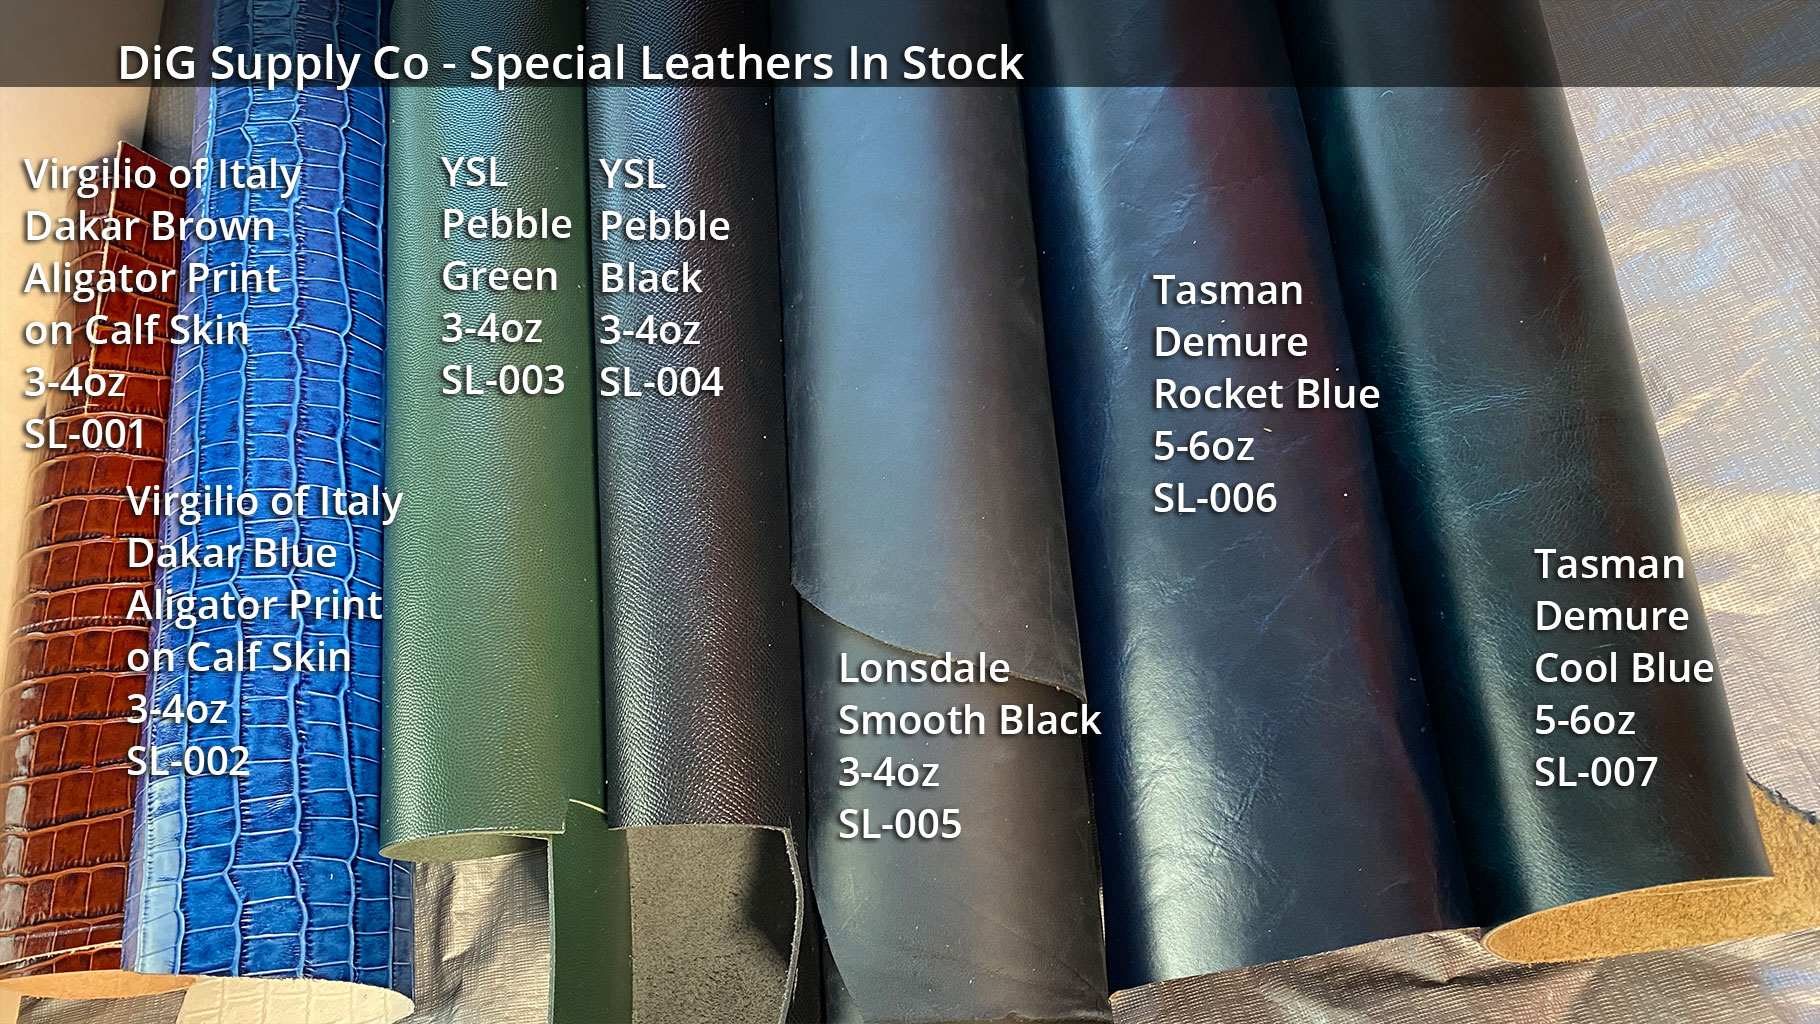 Dig-Leather-Special